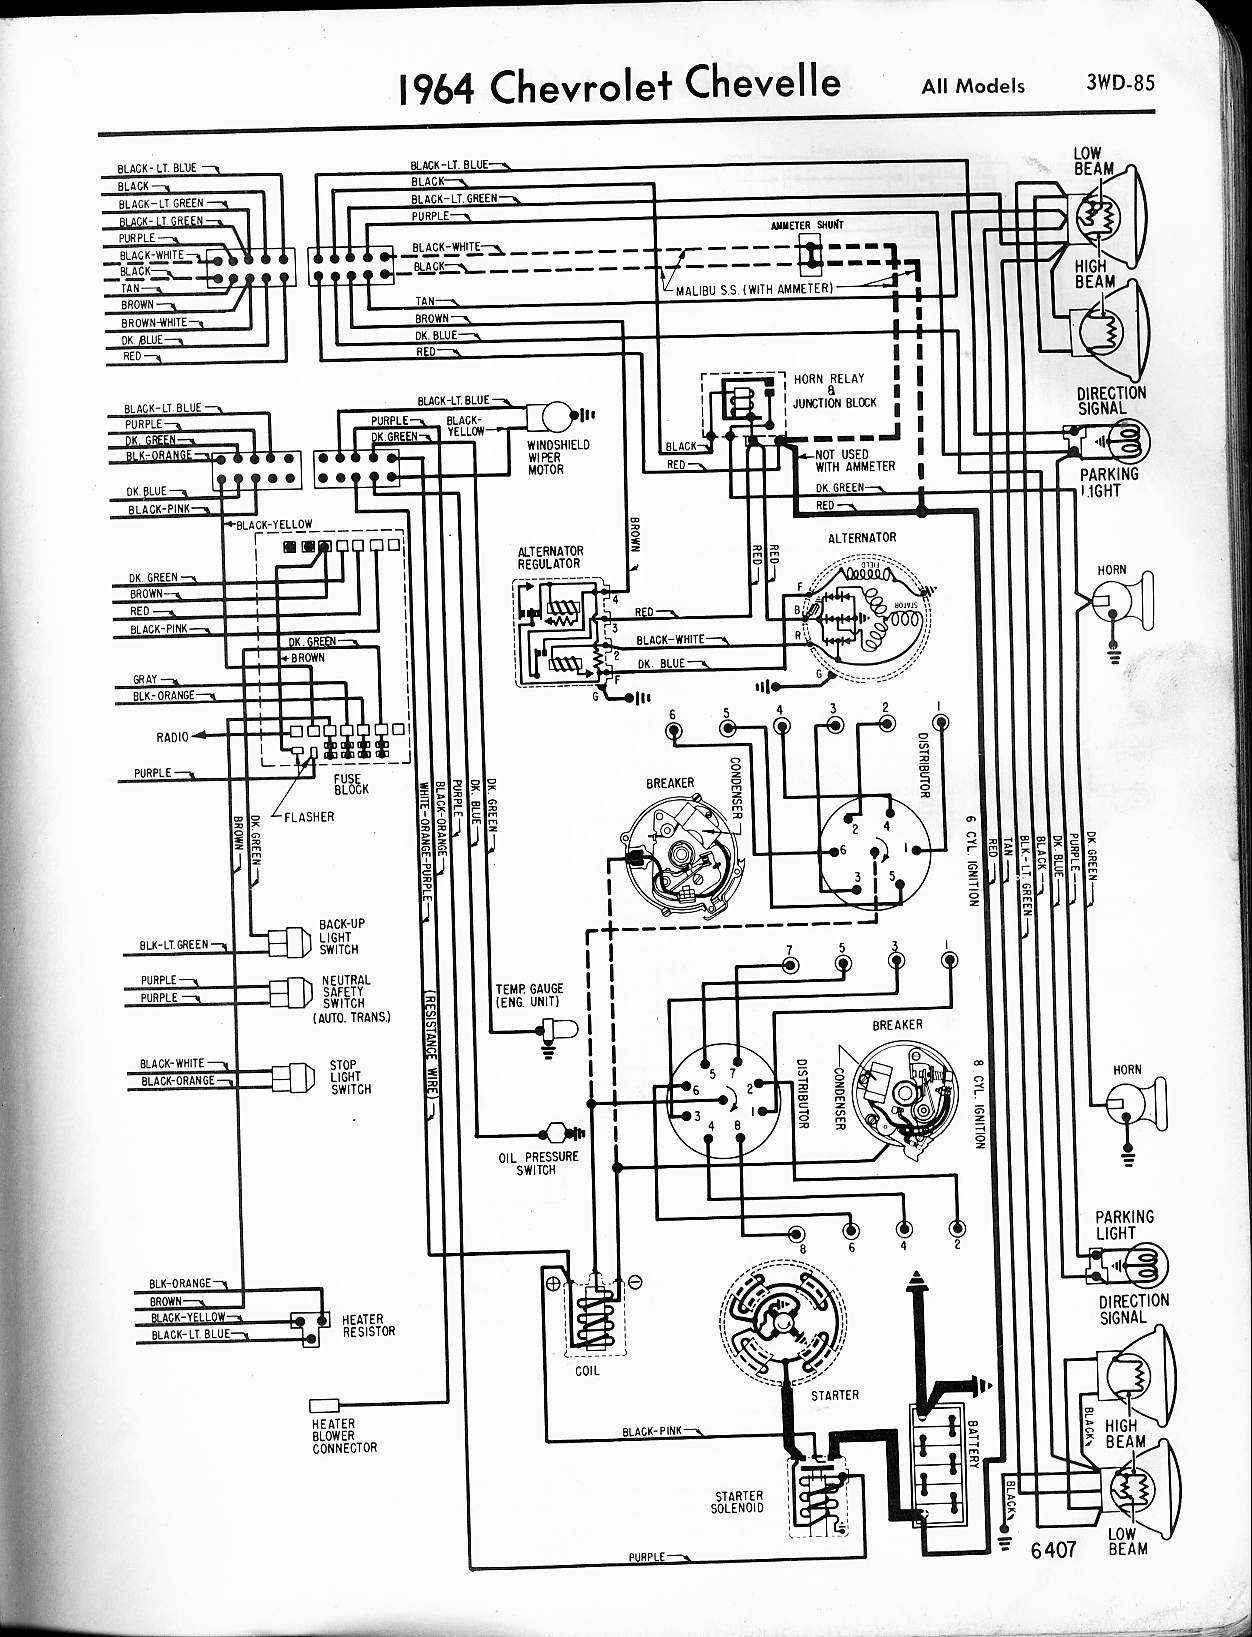 1969 chevelle wiring diagram Collection-Chevy S Arresting 1969 Chevelle Wiring 1969 Camaro Wiring Harness 15-s